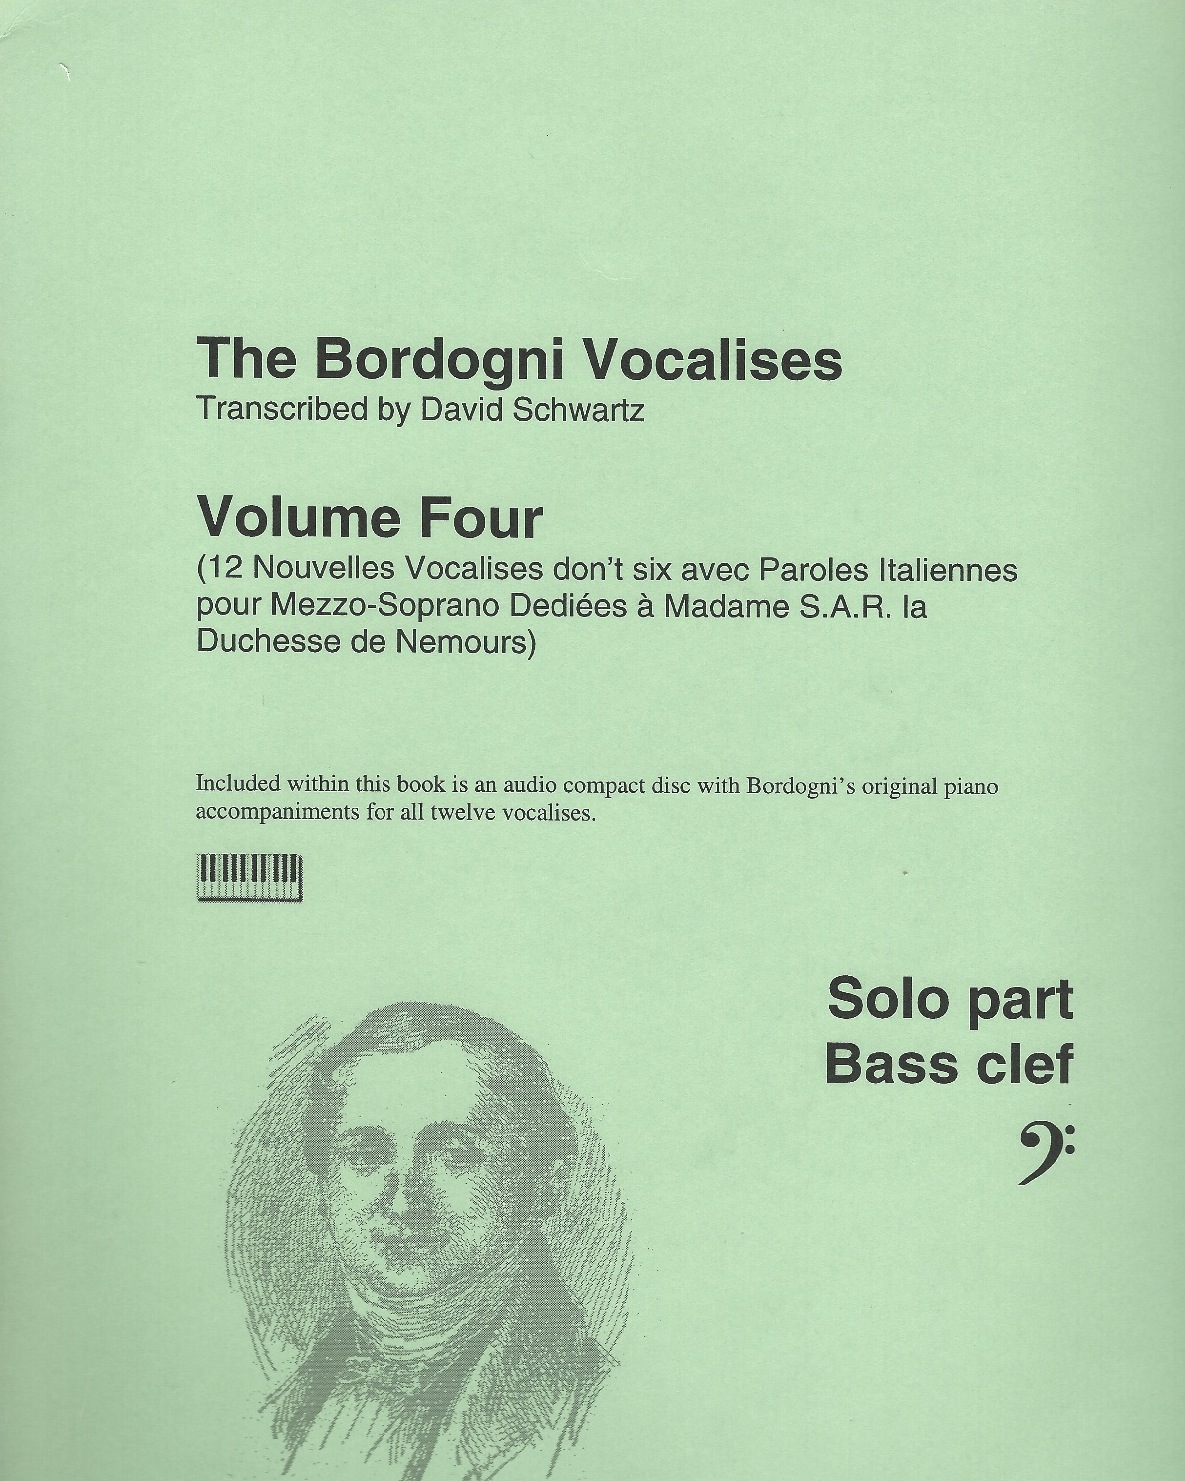 Bordogni Vocalises (Rochut) in bass clef - Vol.4 (12 pieces) - with piano acc. on CD